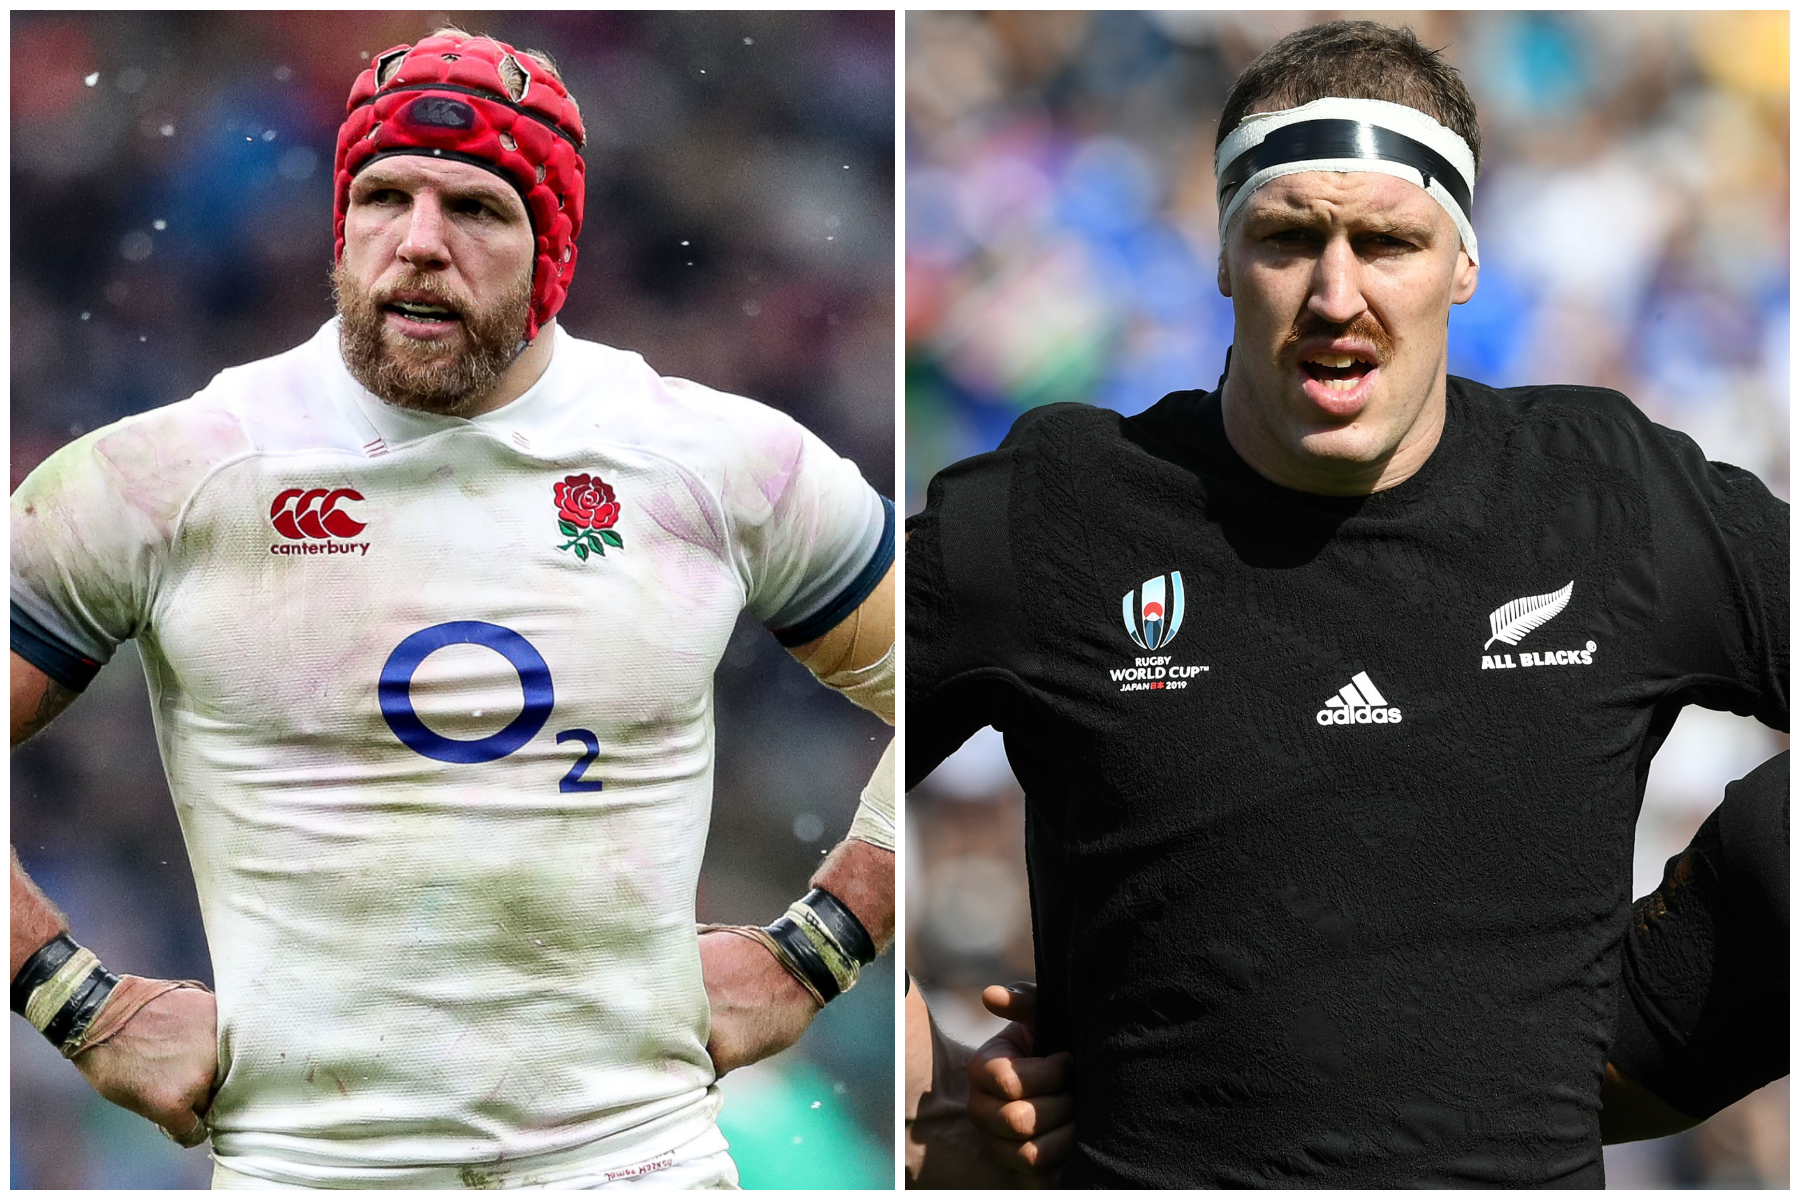 'Kiwi arrogance': English star's foul-mouthed clash with All Black